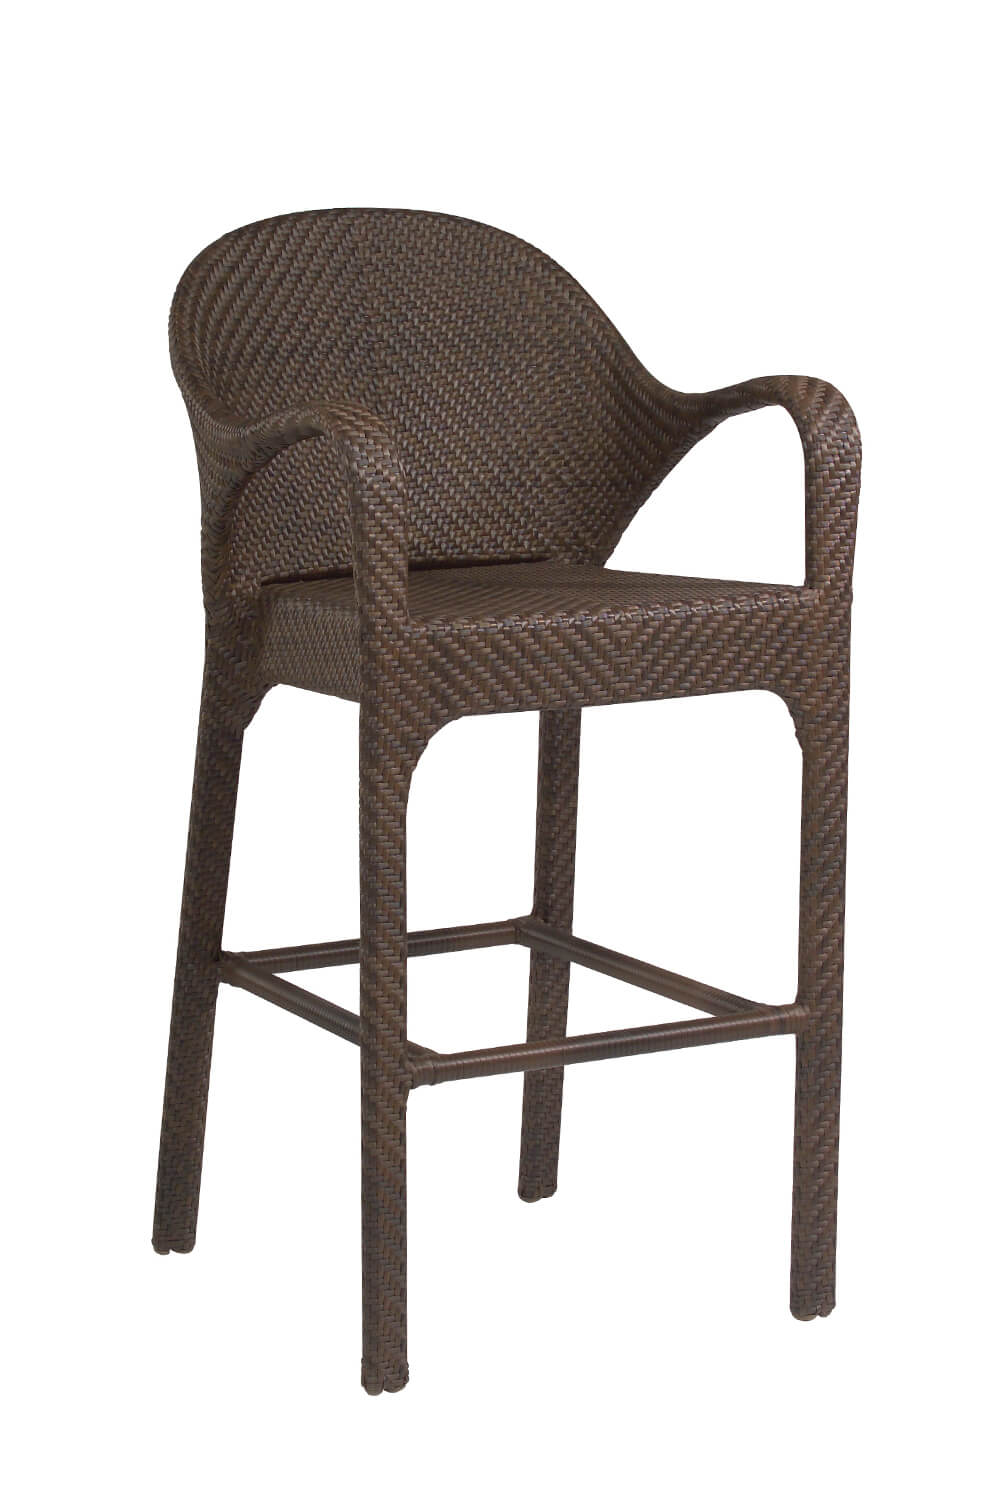 All-Weather Bali Outdoor Woven Bar Stool